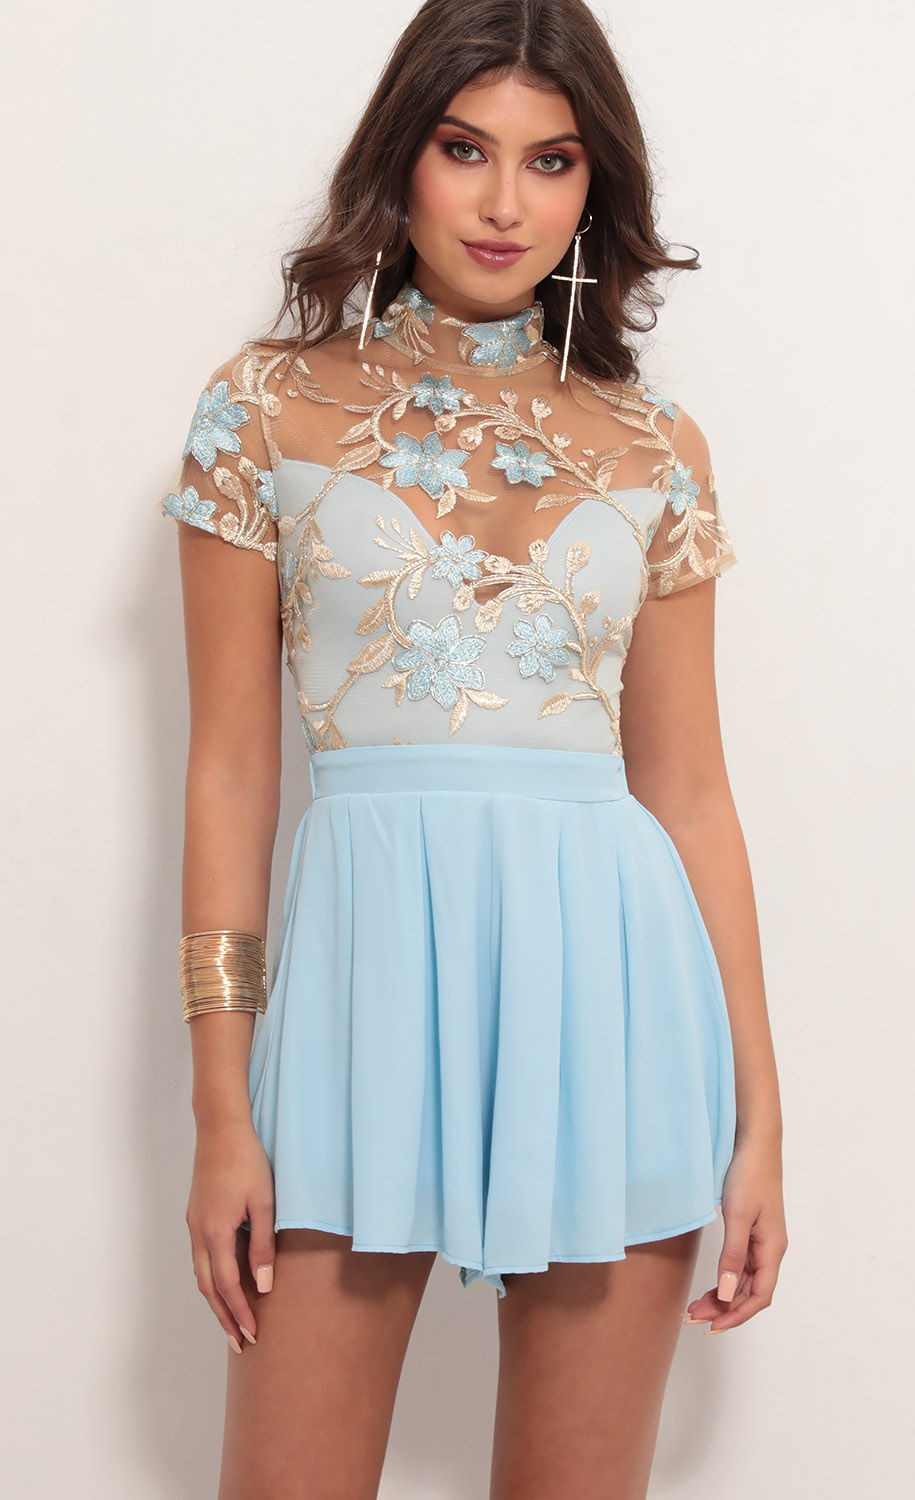 Heiress Floral Lace Romper in Blue Gold